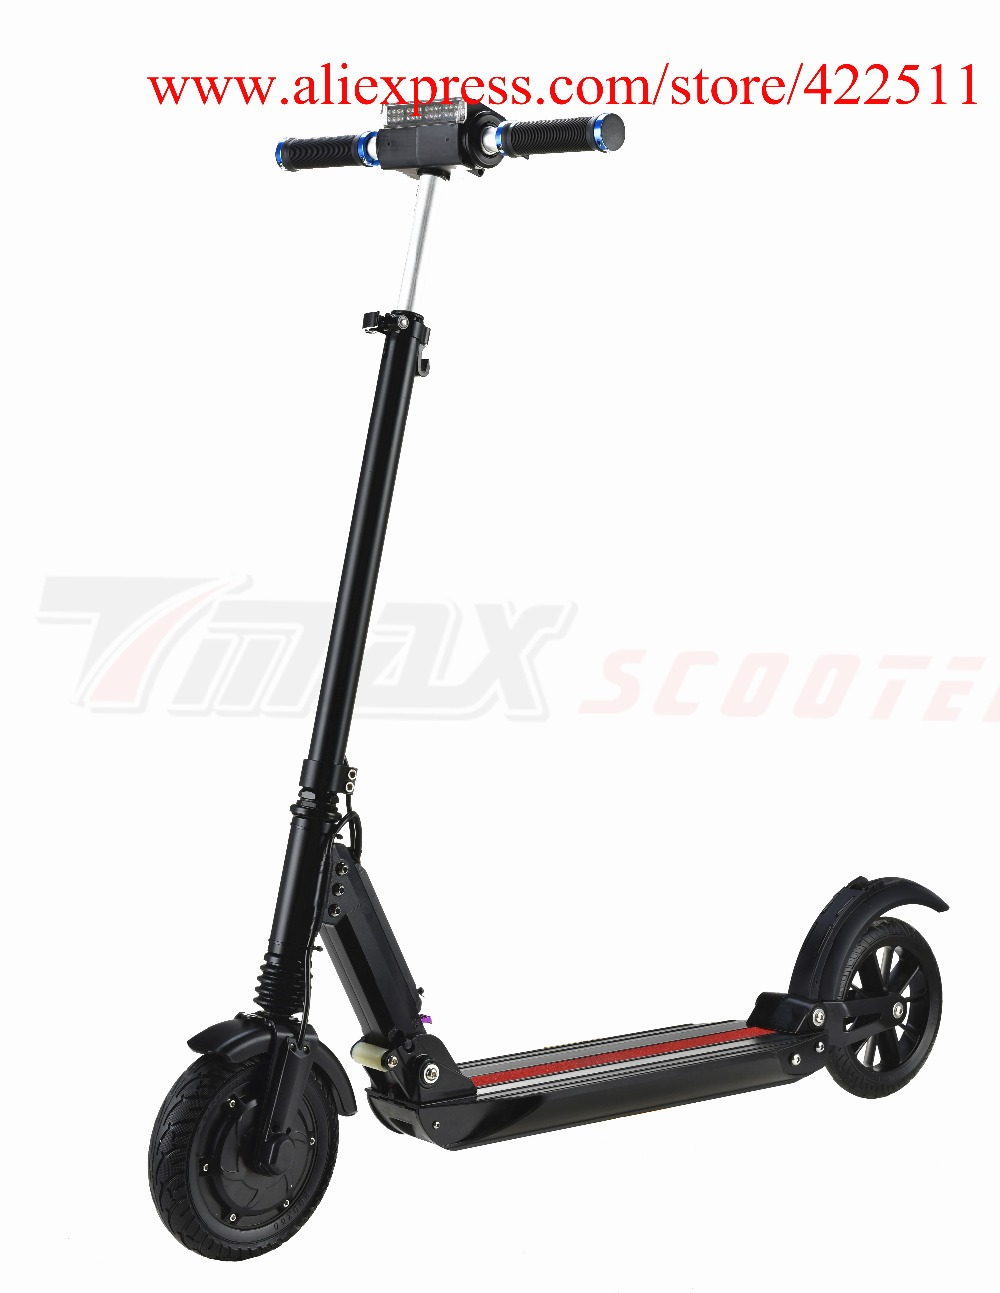 2019 New Popular <font><b>250W</b></font> 24V <font><b>Electric</b></font> <font><b>Scooter</b></font> 2-Wheel <font><b>Electric</b></font> Standing <font><b>Scooter</b></font> Foldable <font><b>Electric</b></font> Bike With Lithium Battery image